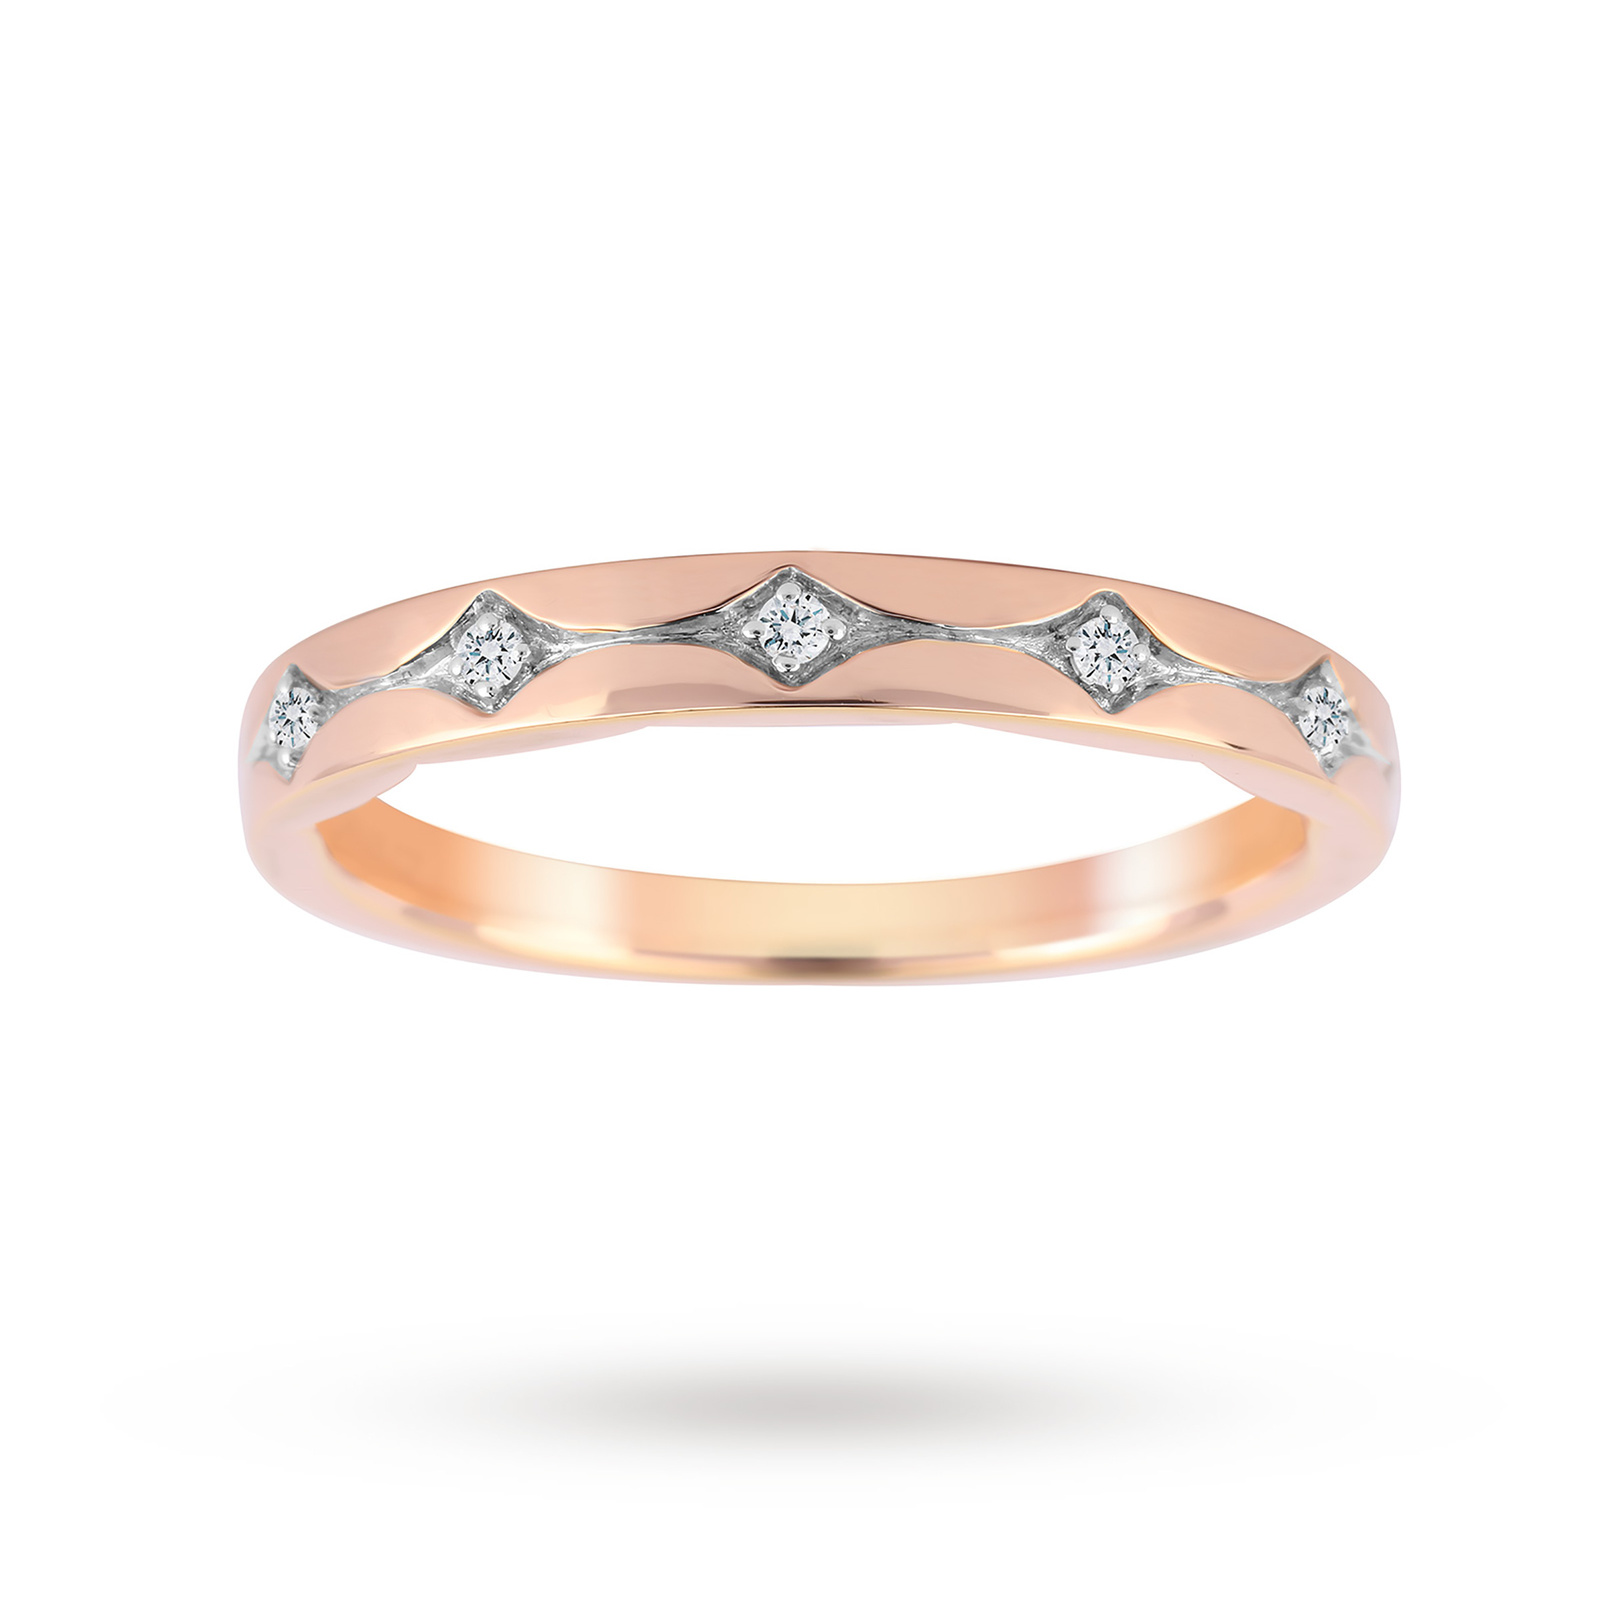 Jenny Packham 18ct Rose Gold 0.05cttw Band Ring - Ring Size J